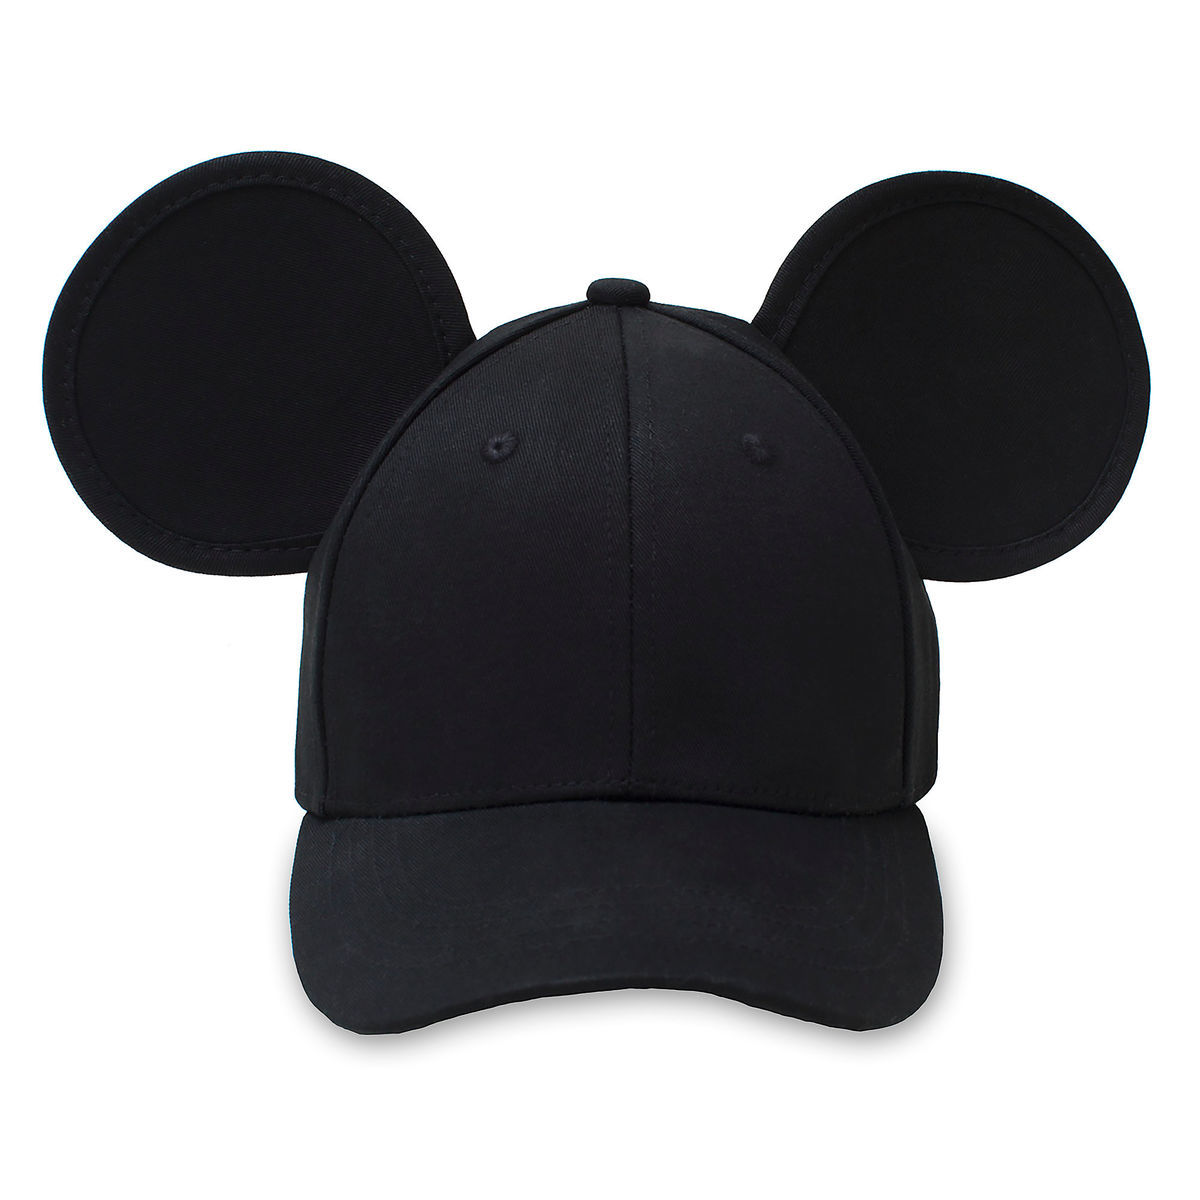 Product Image of Mickey Mouse Ears Hat for Adults by Cakeworthy   1 46f0d57dcd04